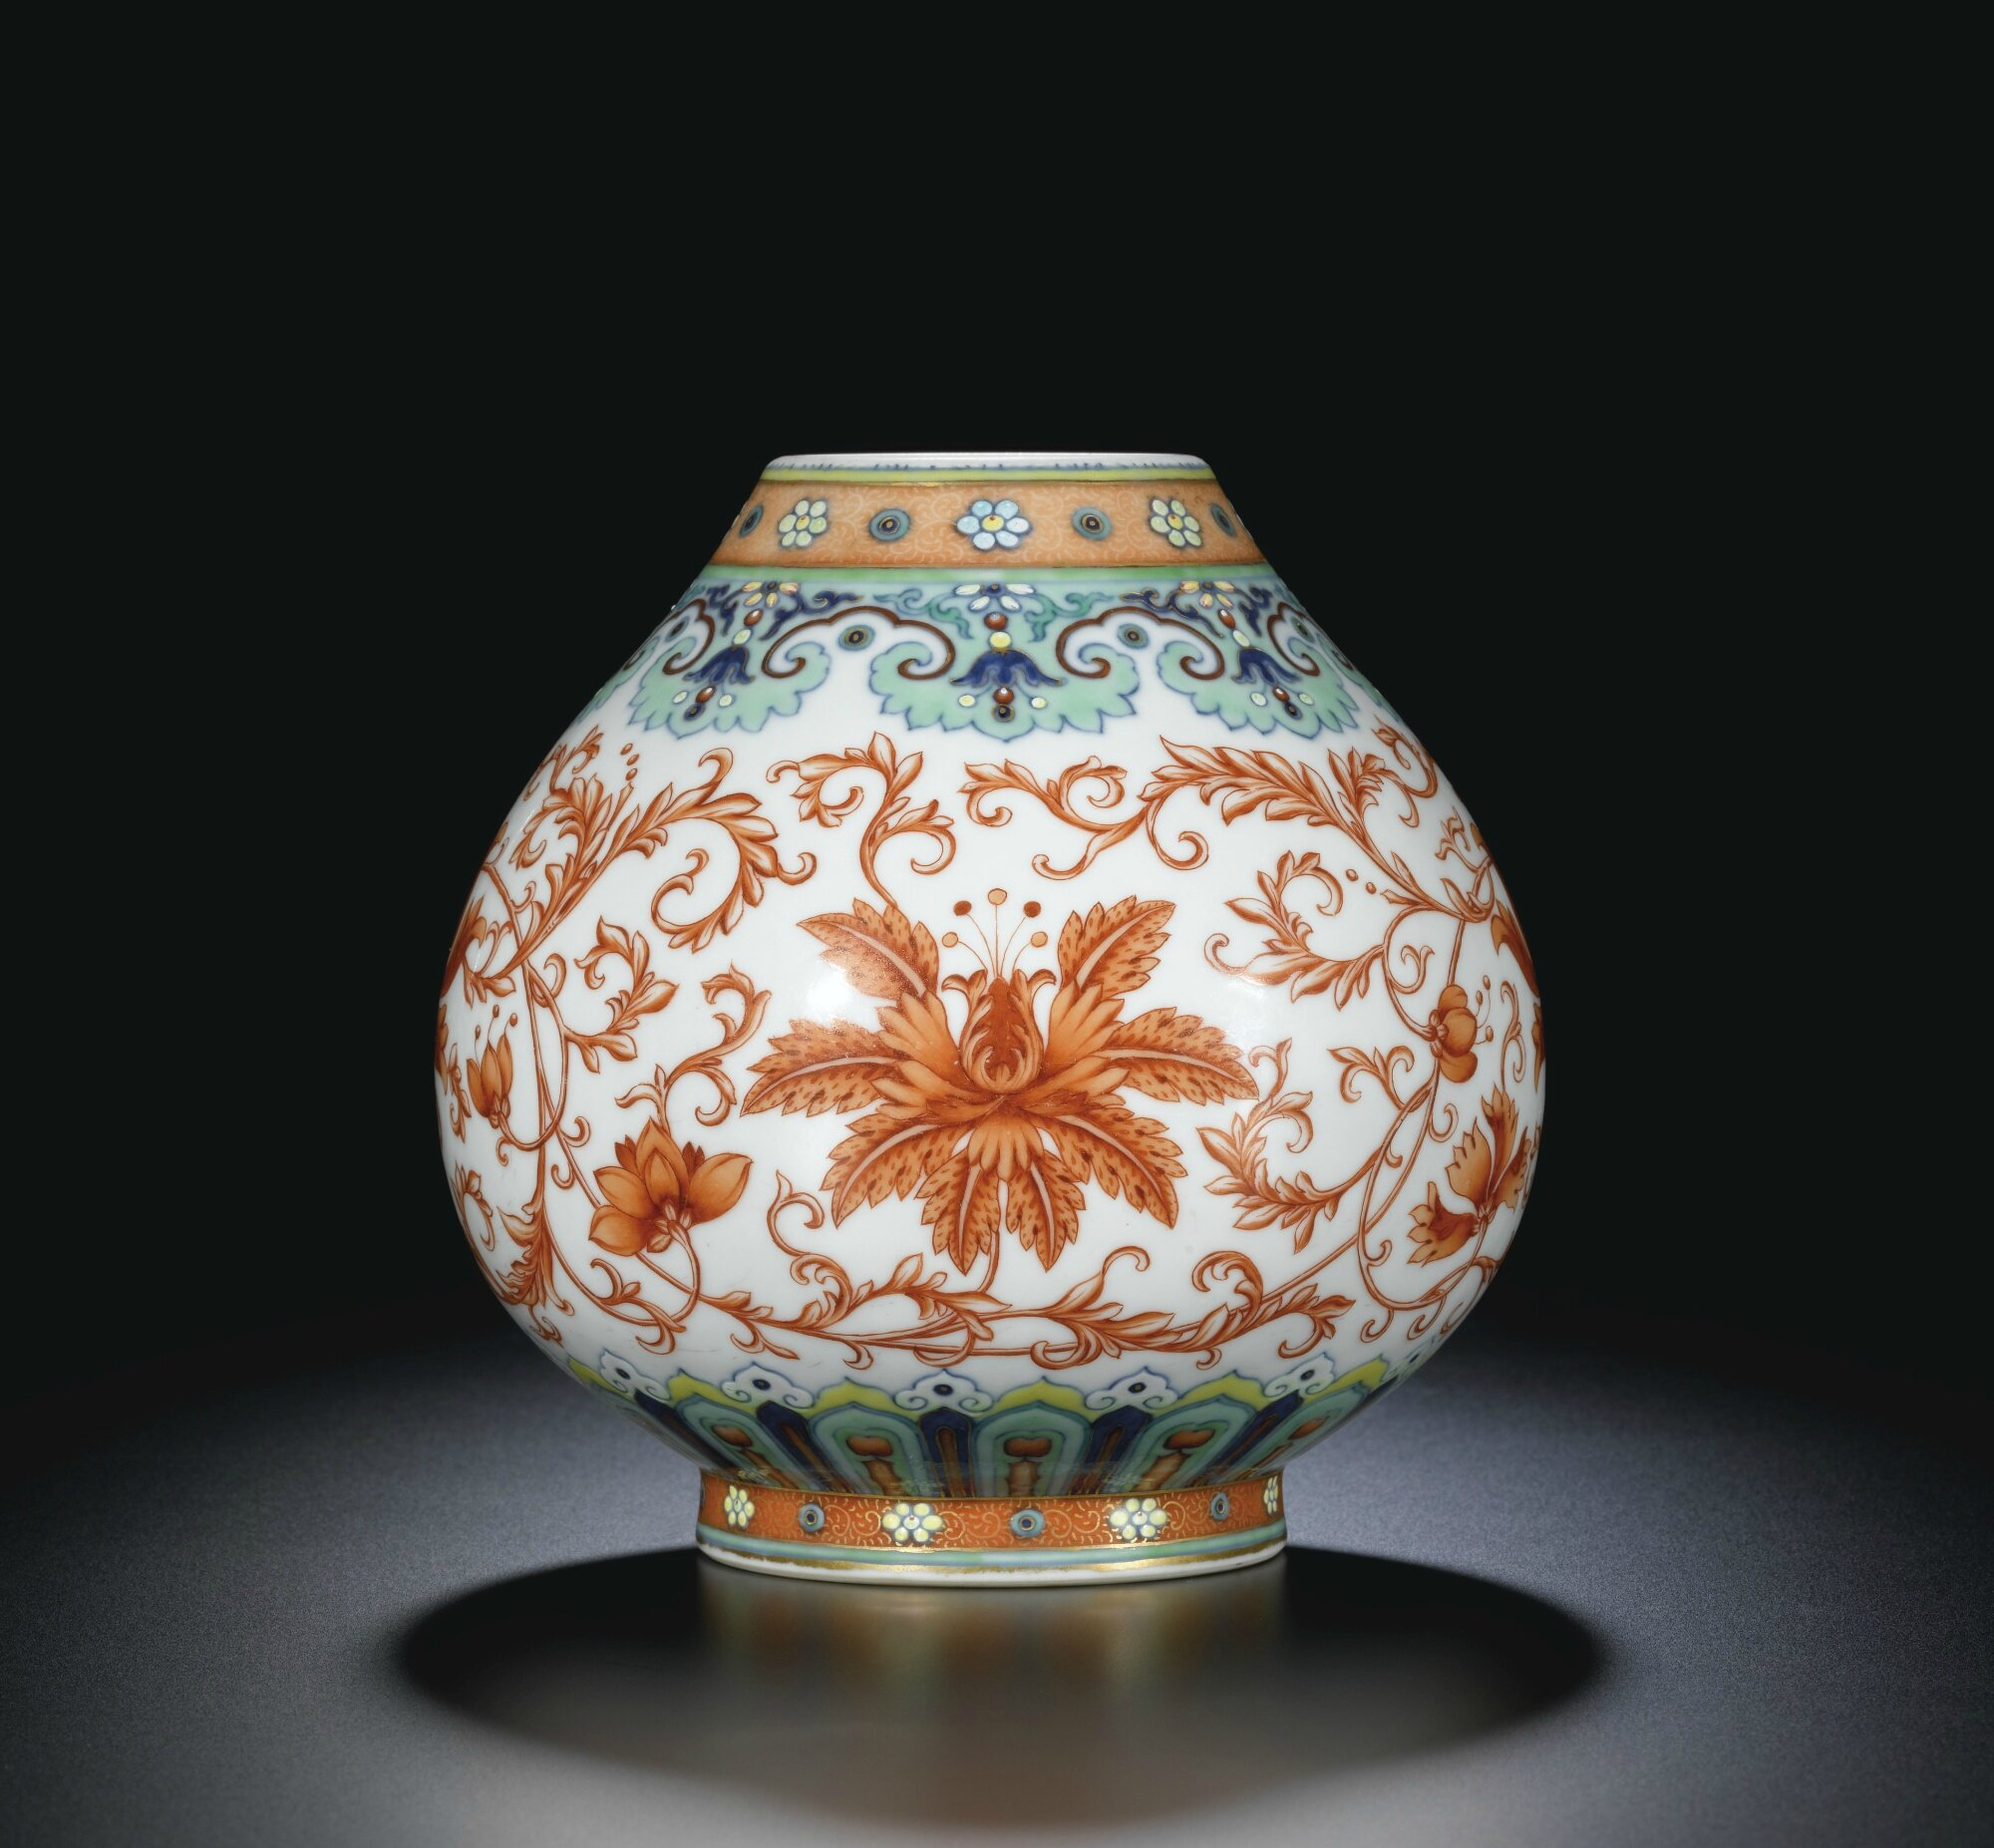 A rare doucai and iron-red floral vase seal, Mark and period of Qianlong